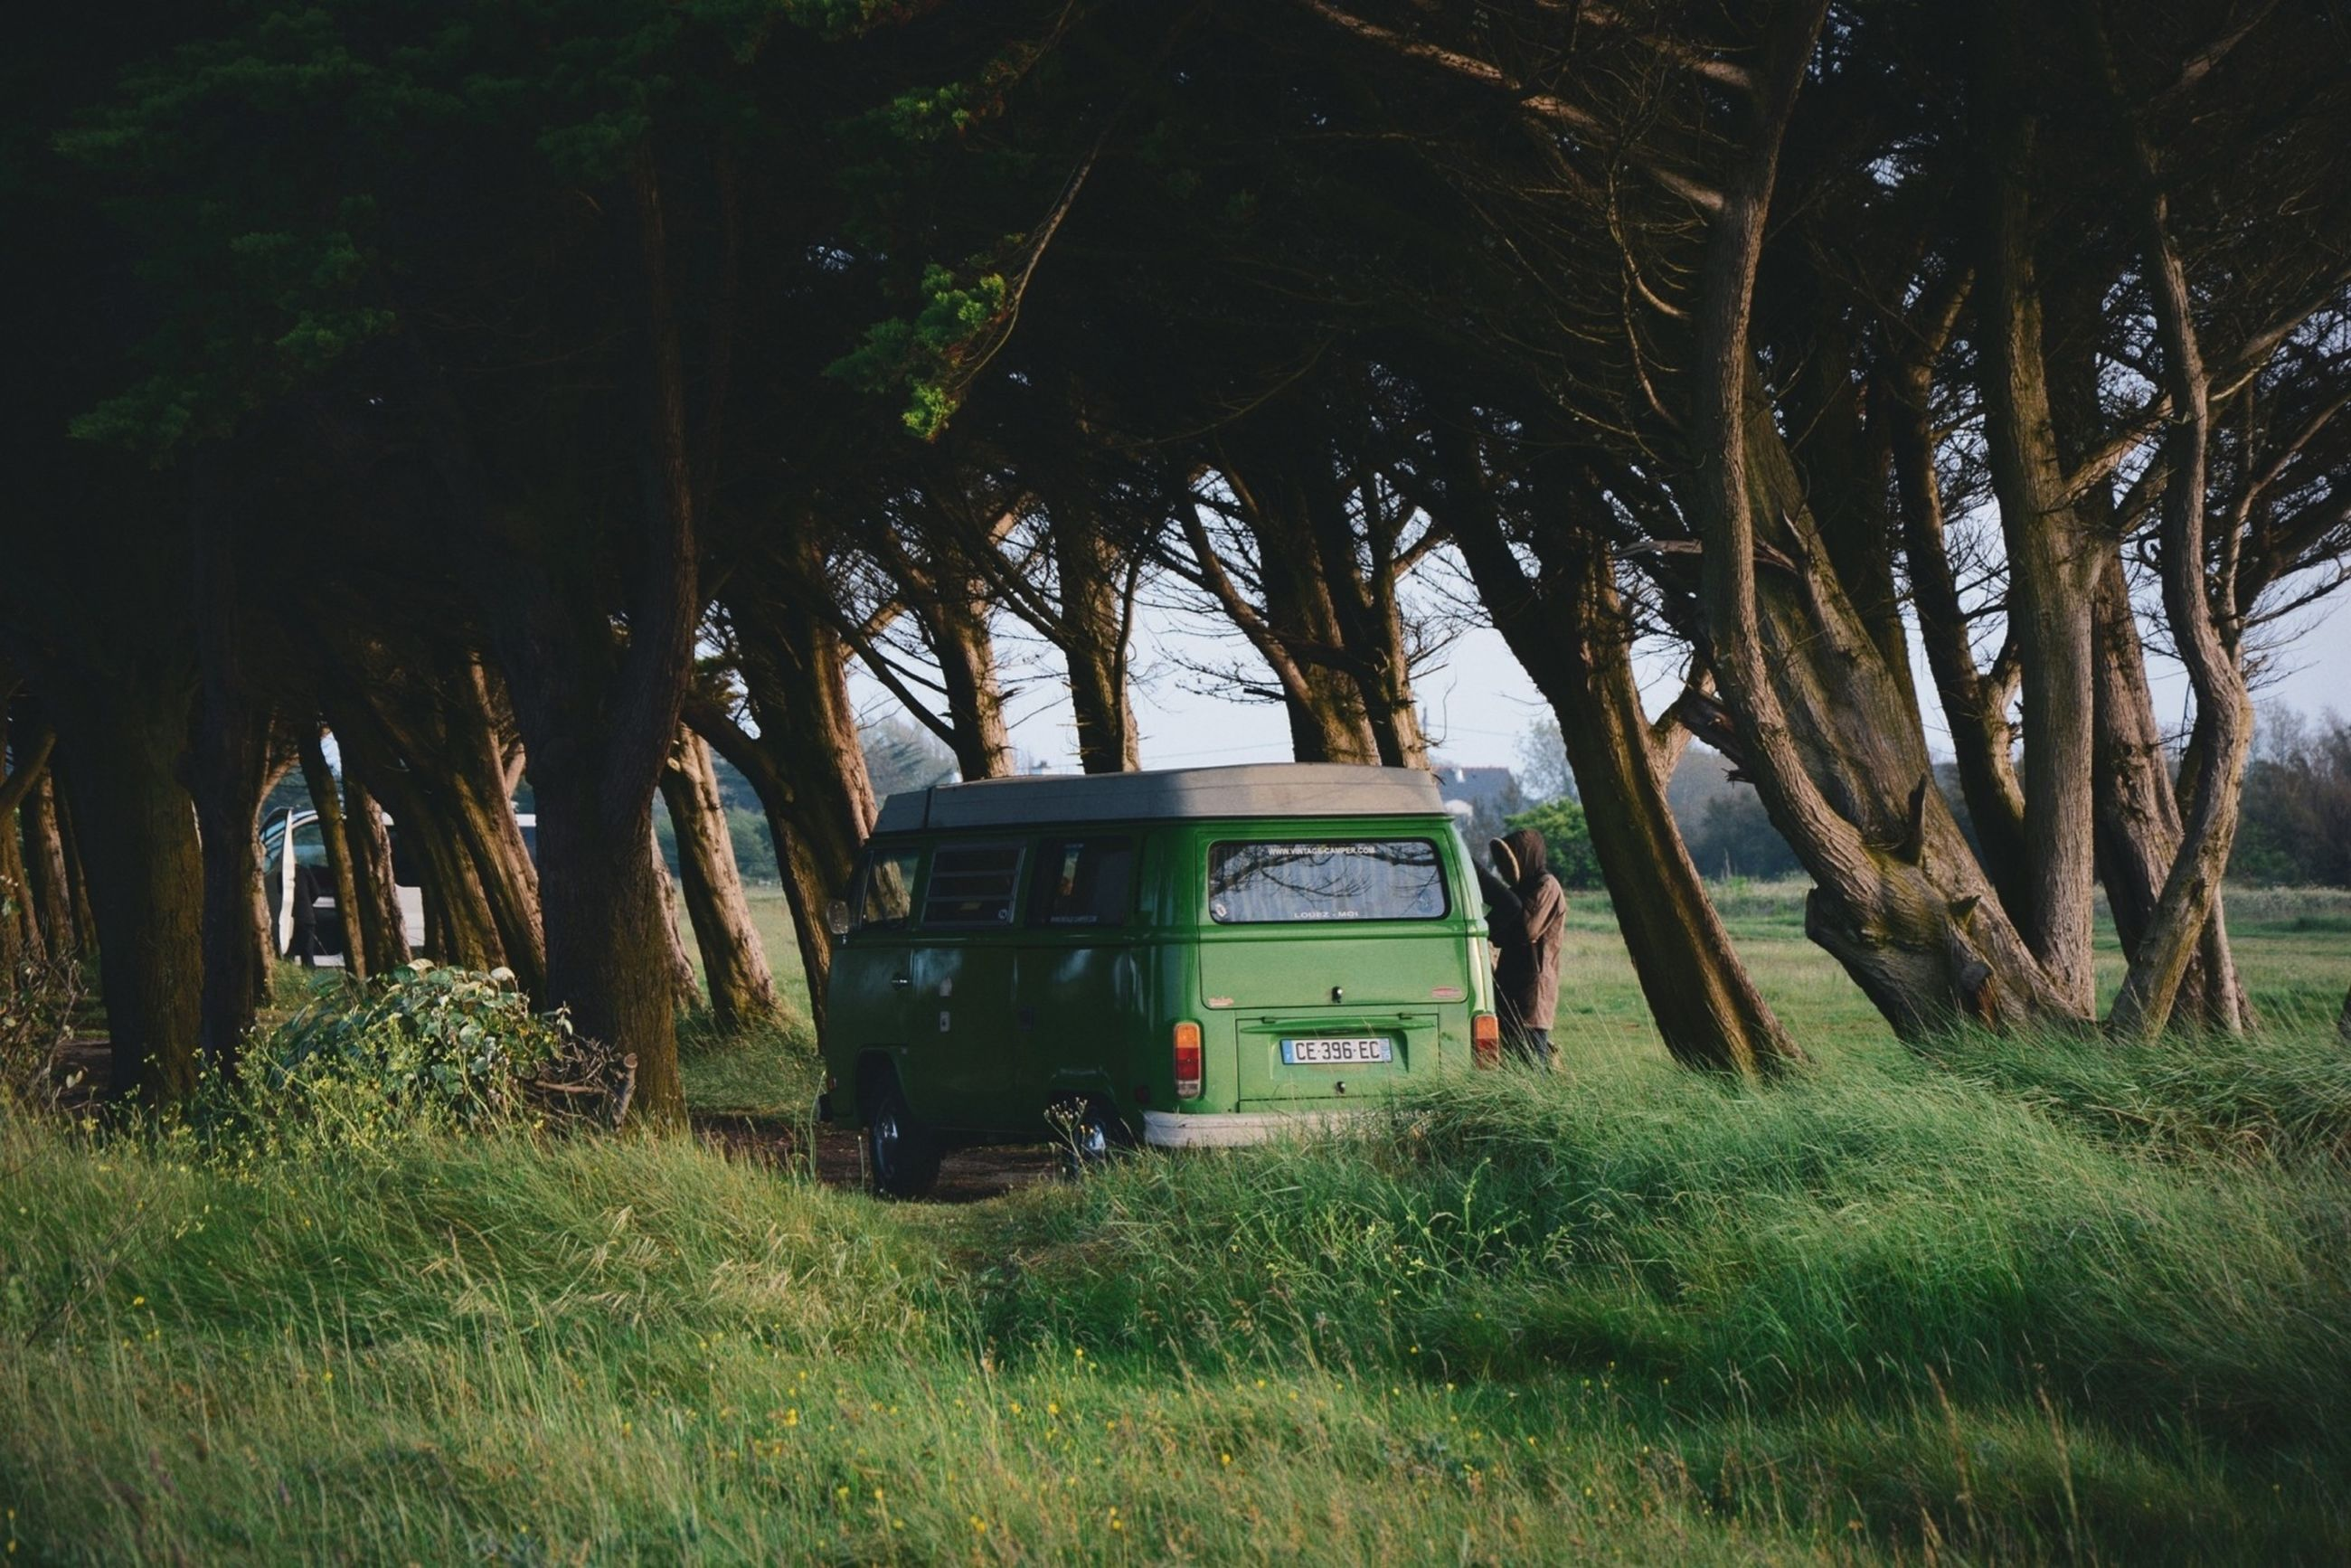 tree, grass, transportation, land vehicle, mode of transport, car, field, growth, green color, nature, tree trunk, grassy, outdoors, sunlight, tranquility, day, travel, landscape, no people, plant